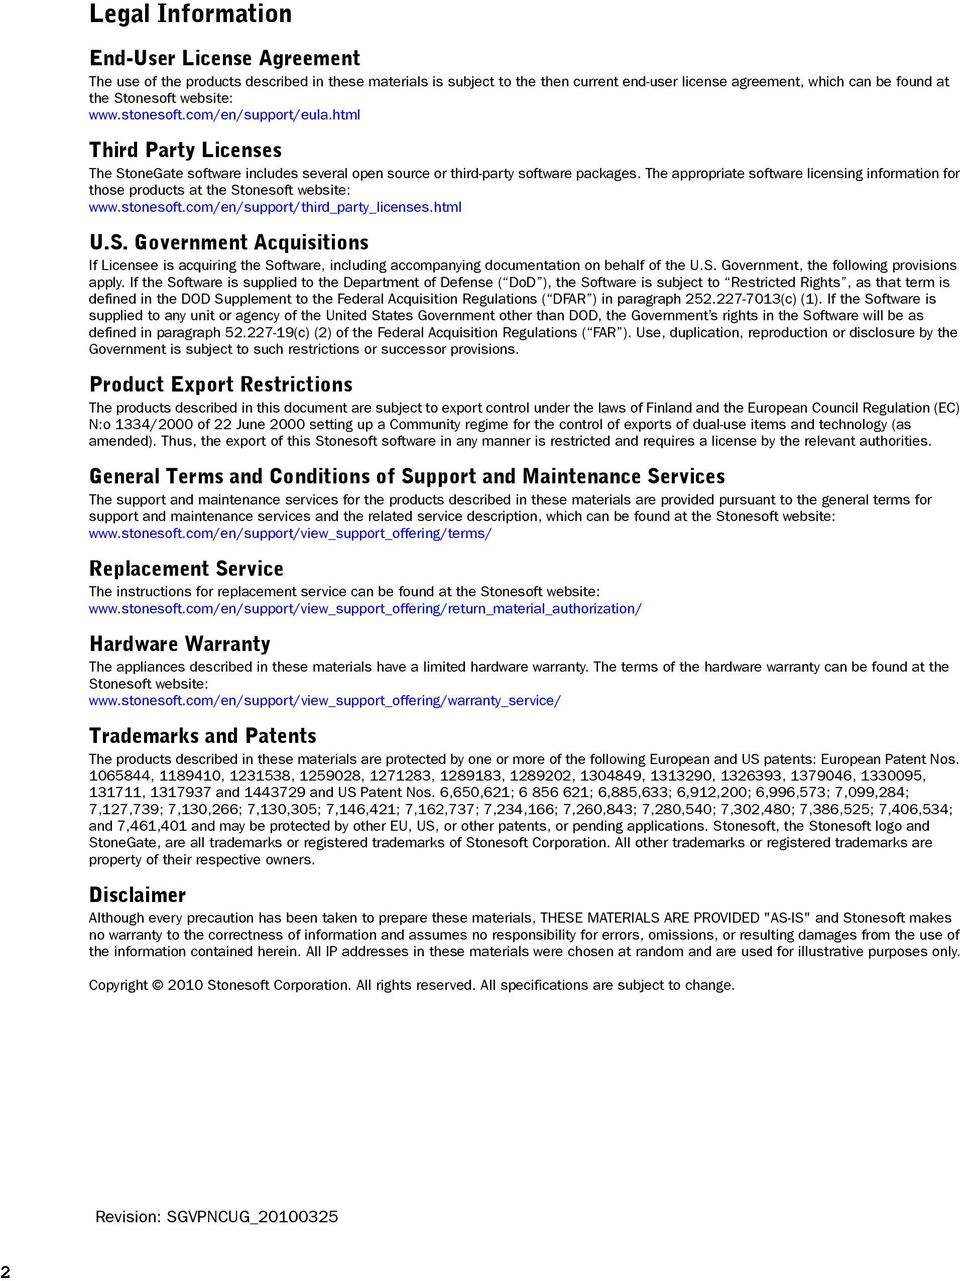 The appropriate software licensing information for those products at the Stonesoft website: www.stonesoft.com/en/support/third_party_licenses.html U.S. Government Acquisitions If Licensee is acquiring the Software, including accompanying documentation on behalf of the U.